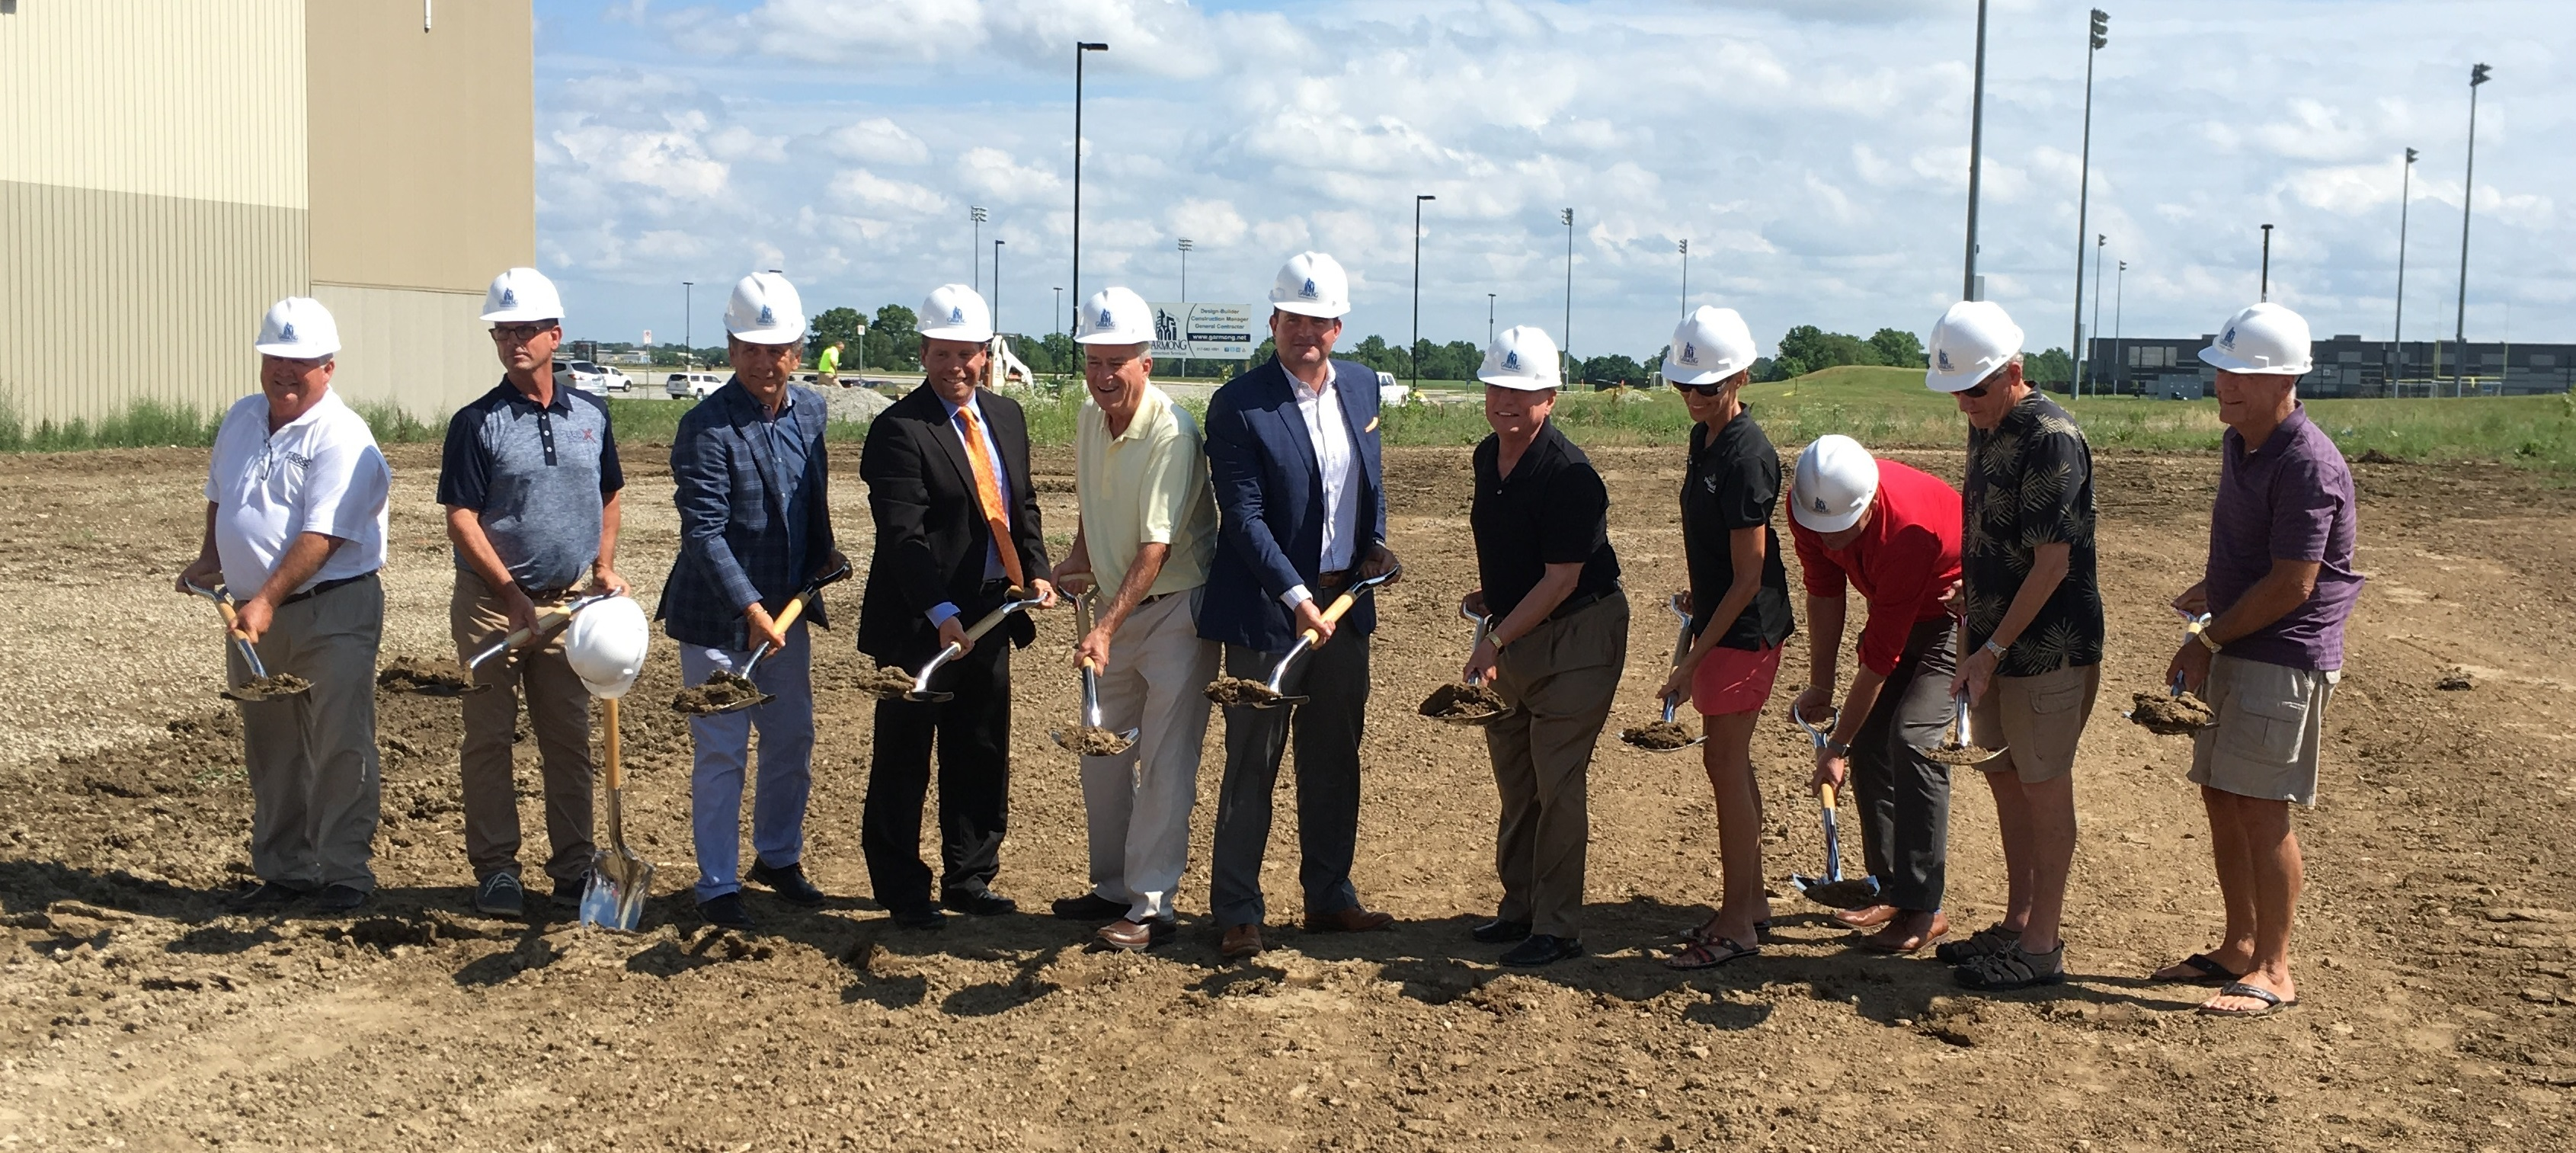 Photo for: PRESS RELEASE: Training Facility Breaks Ground at Grand Park